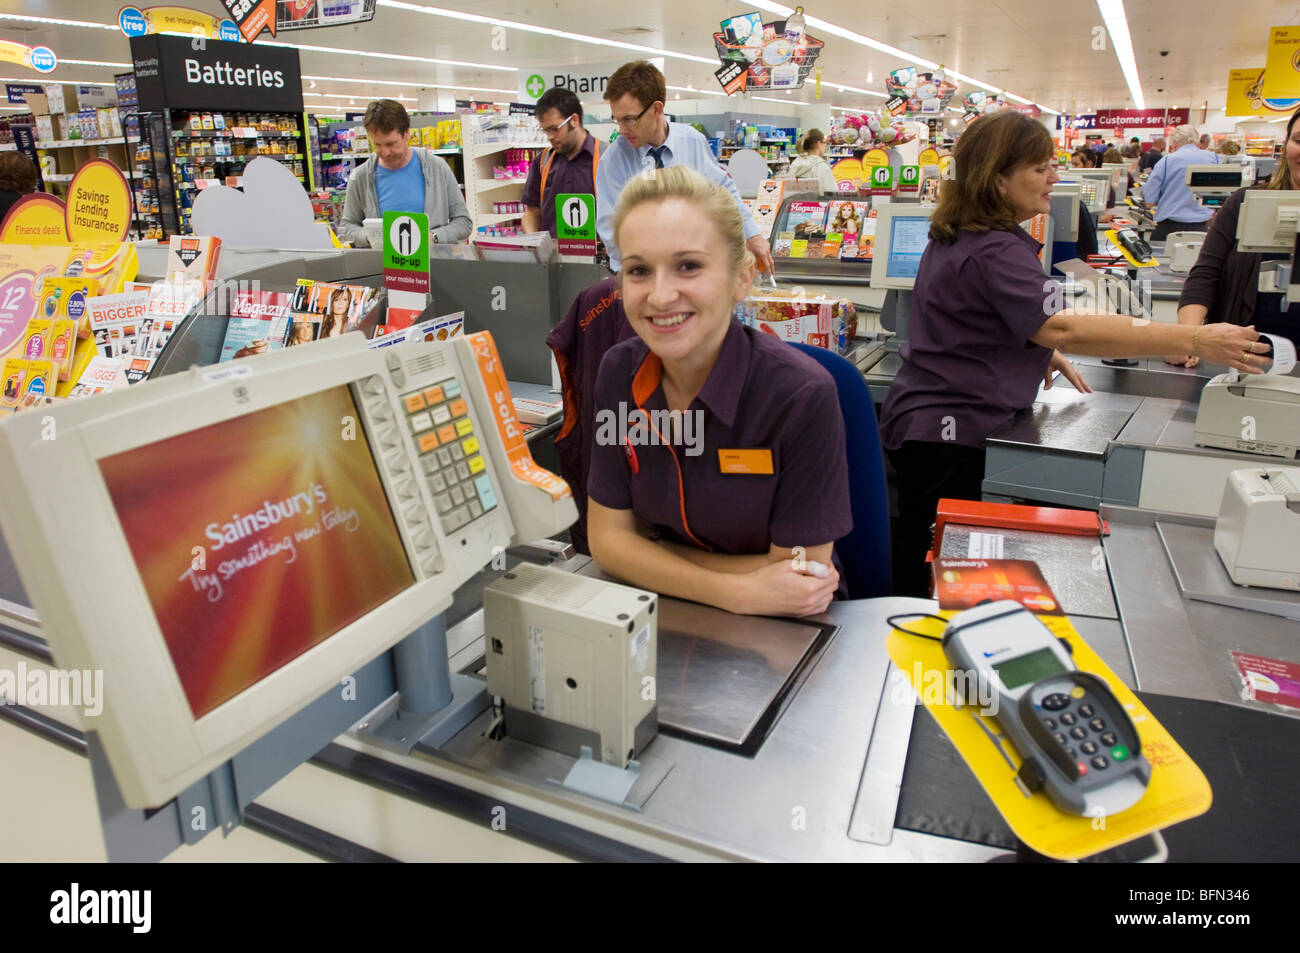 Sainsbury's supermarket. Smiling blonde girl in uniform at a checkout desk - Stock Image